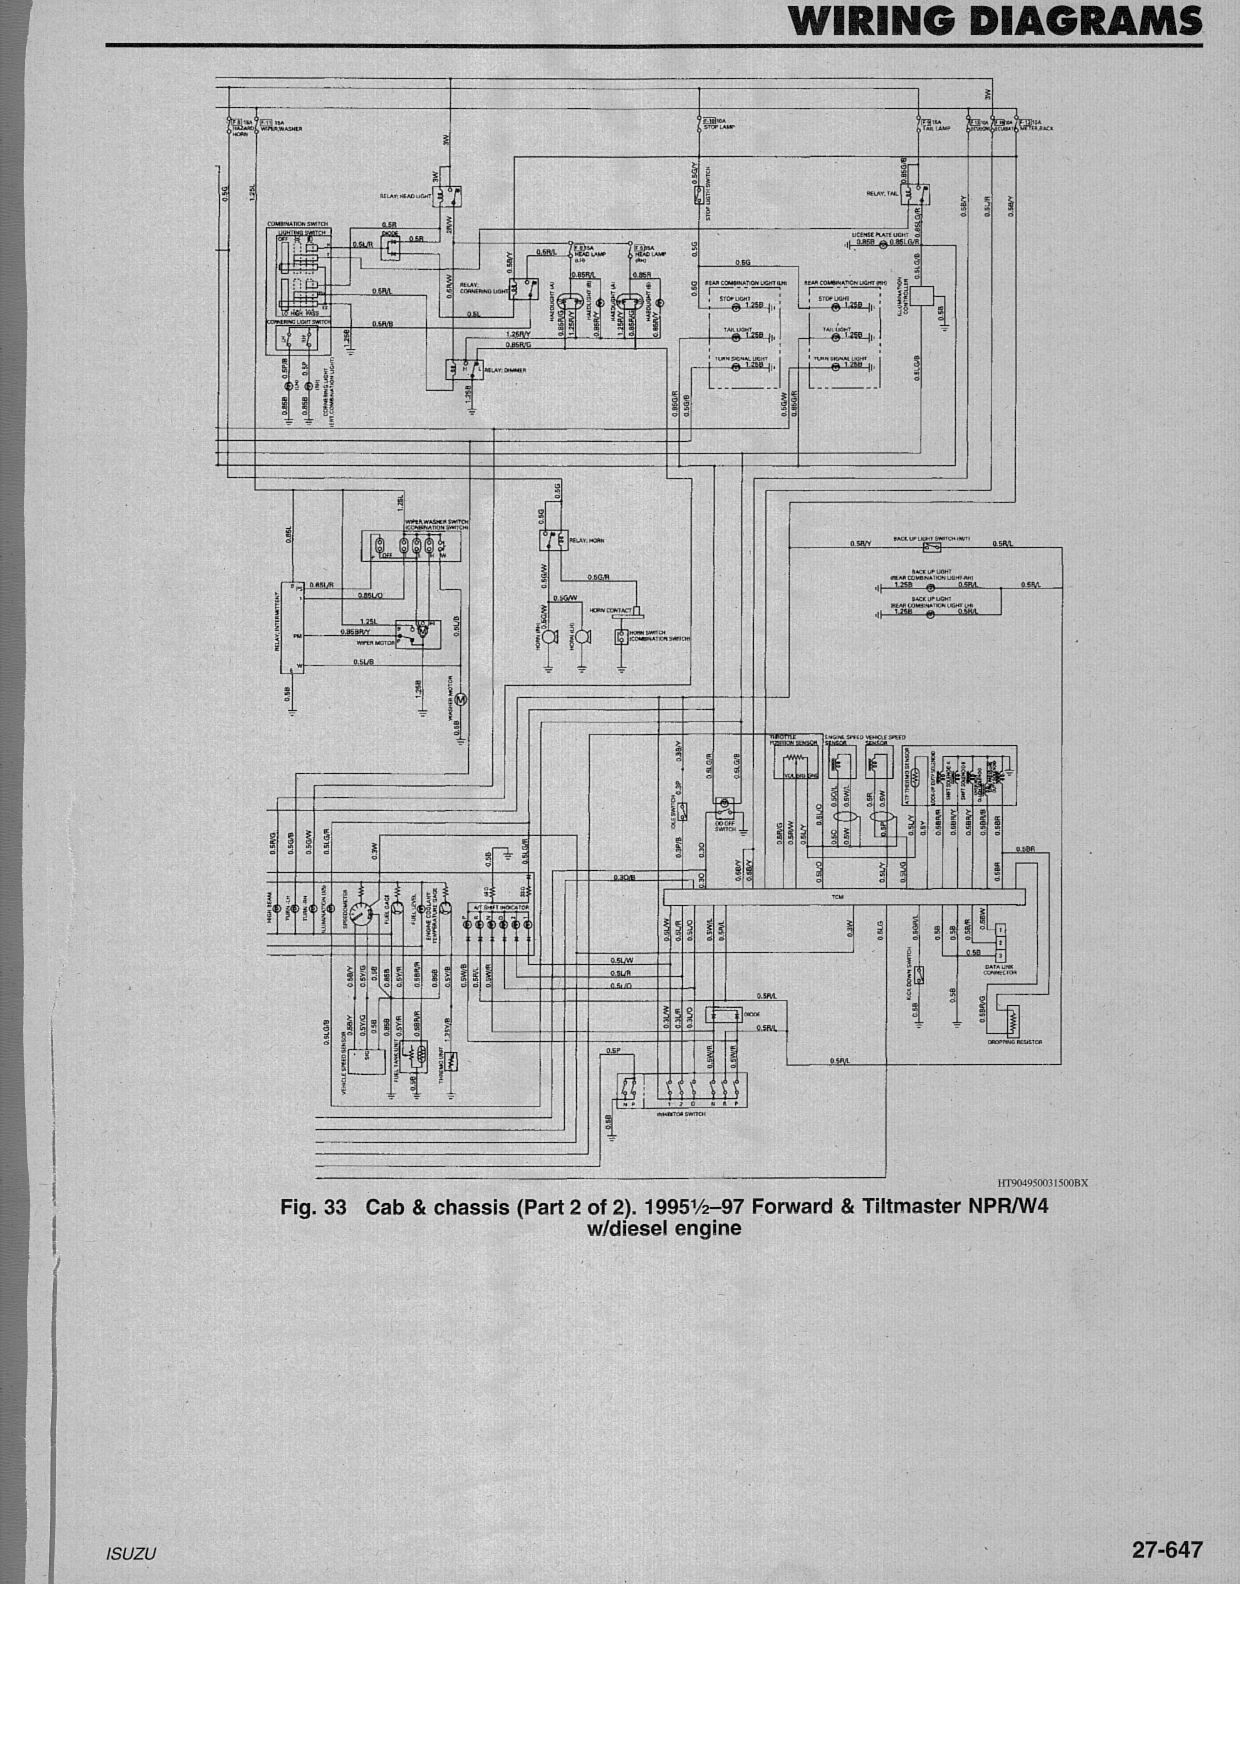 diagram] isuzu npr stereo wiring diagram full version hd quality wiring  diagram - surgediagram.fontana-laura.it  diagram database - fontana-laura.it